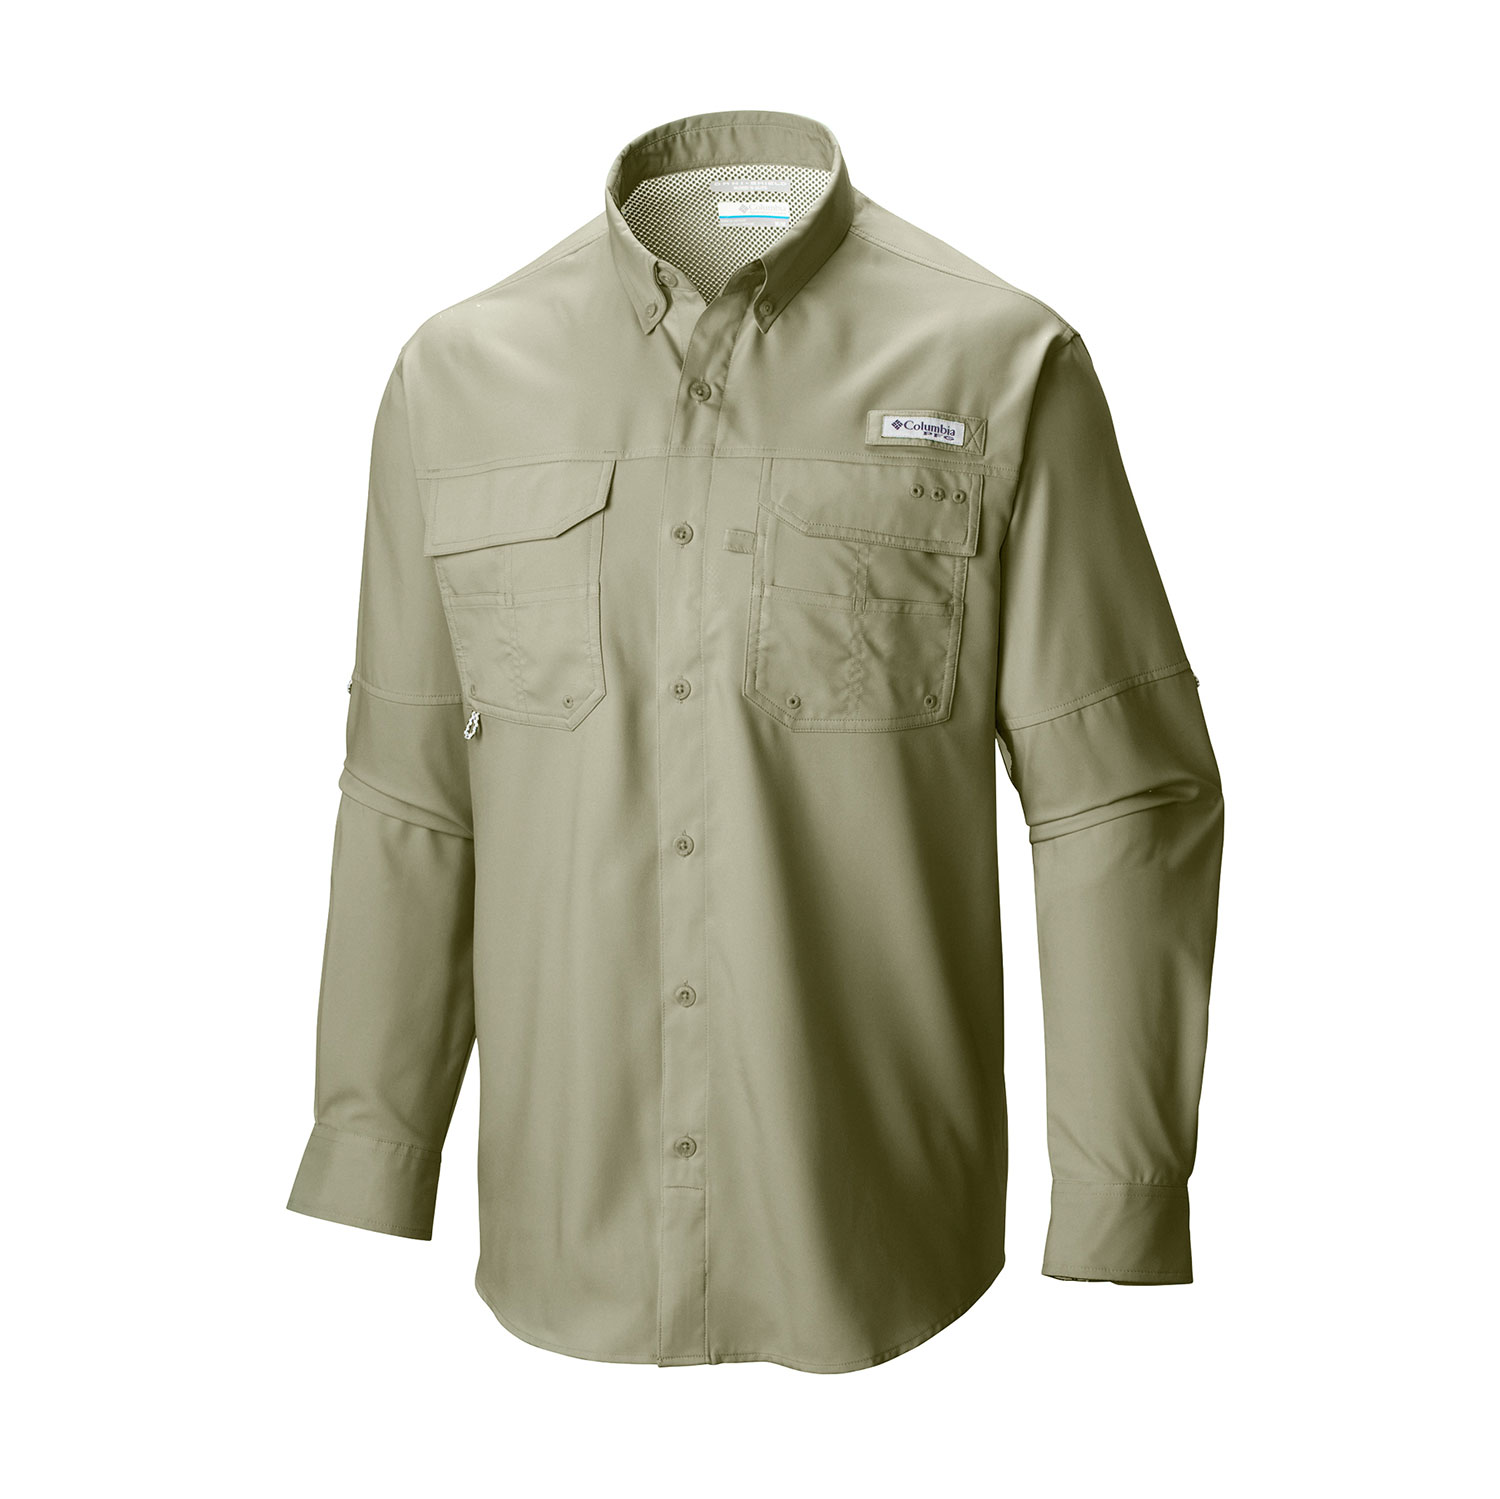 Columbia Men's Blood 'n Guts III Long Sleeve Shirt